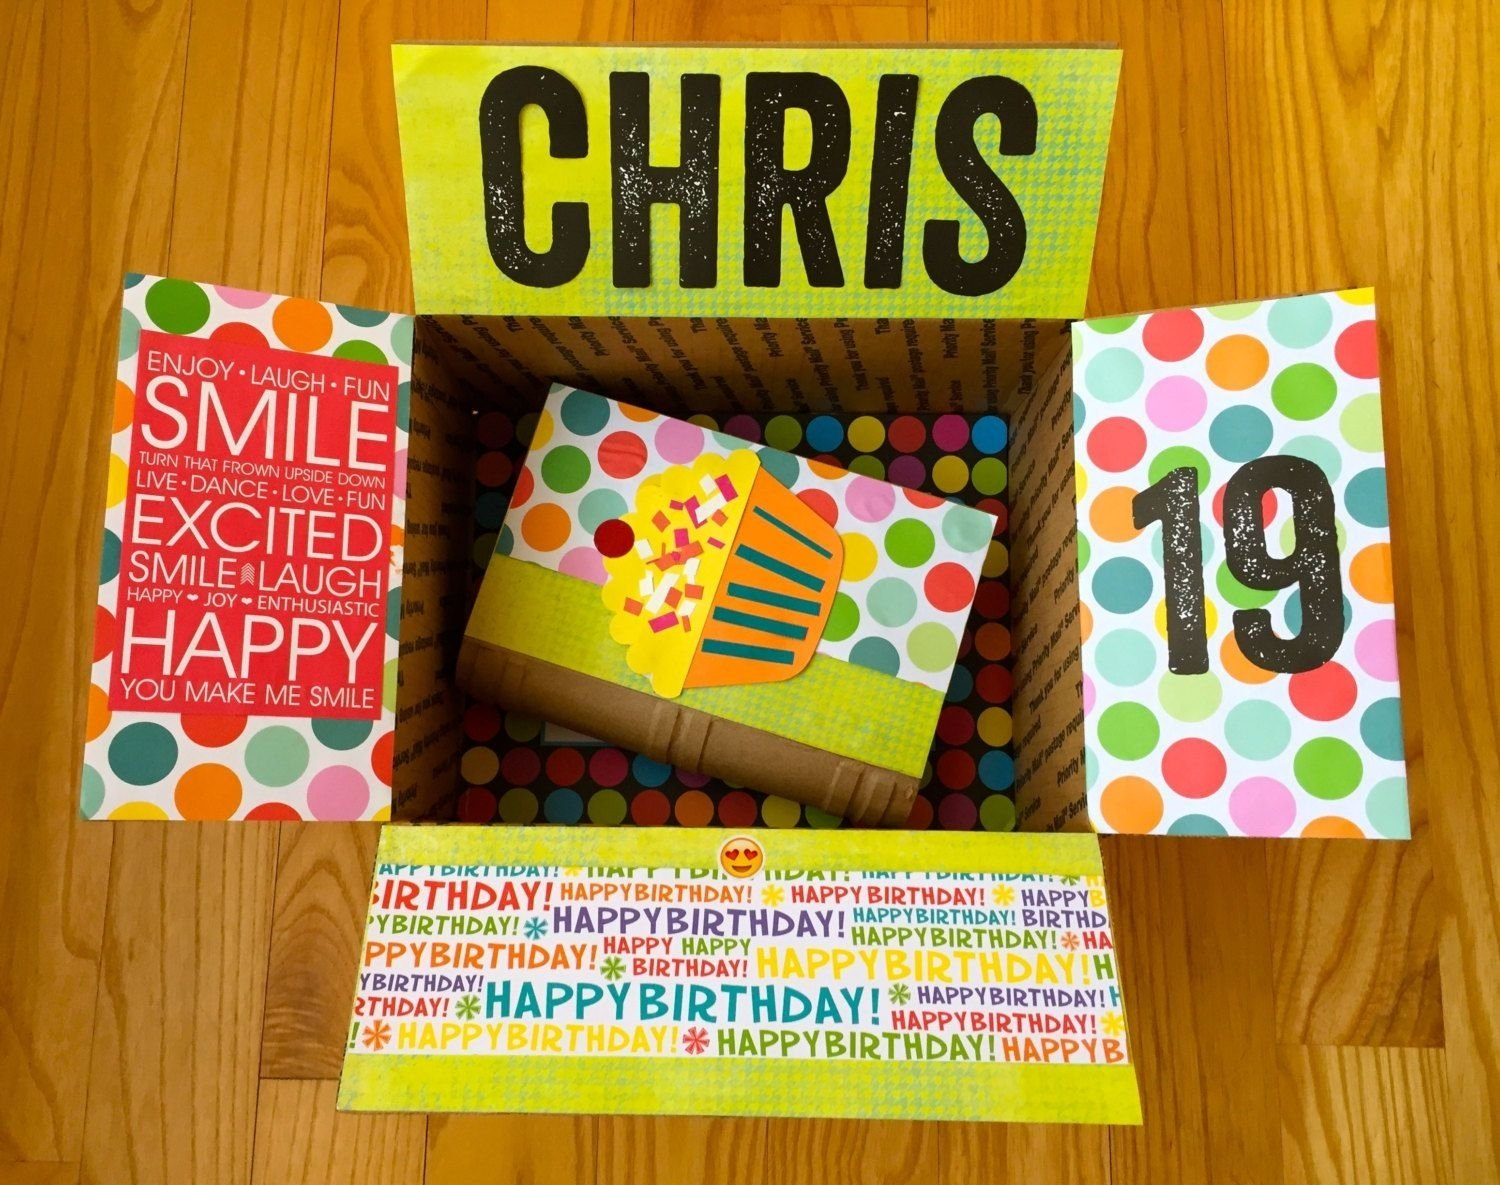 10 Trendy Care Packages For College Students Ideas birthday care package for college studentsboxymama on etsy 1 2021